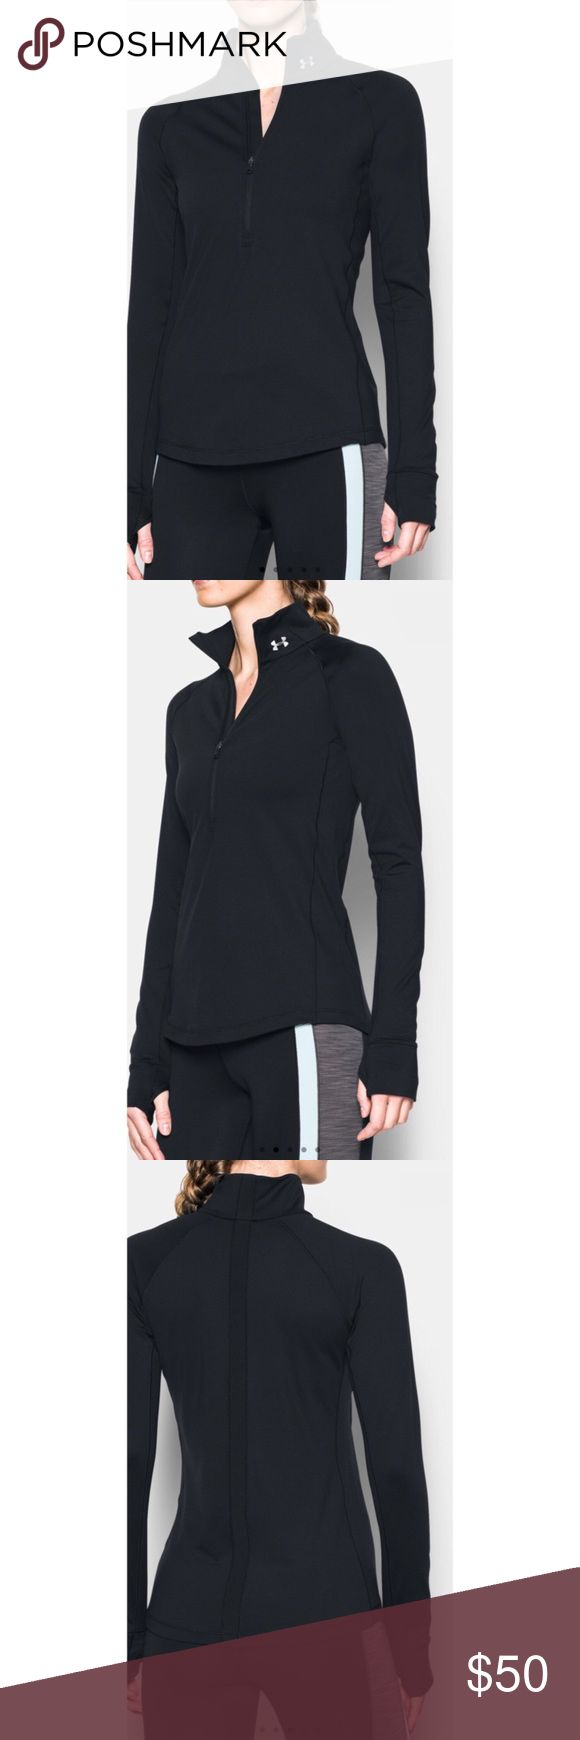 NWT Under Armour Fleece New with tags black coldgear fleece. Brand new. Women's small, petite. Very warm and beautiful. Open to negotiation Under Armour Tops Sweatshirts & Hoodies